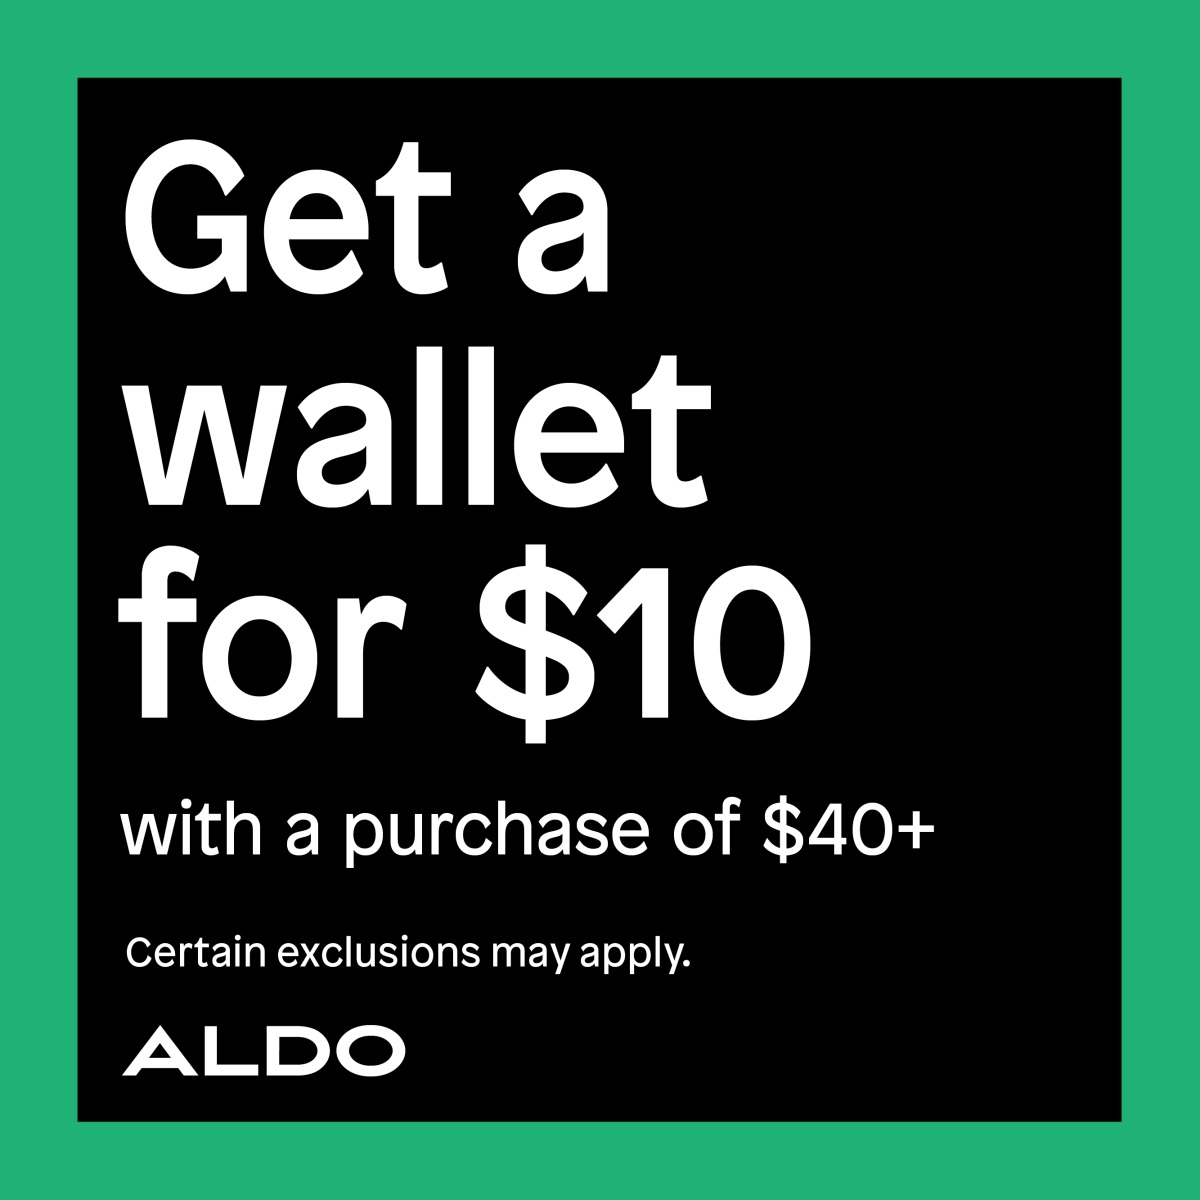 Get a wallet for $10 with a purchase of $40 or more!